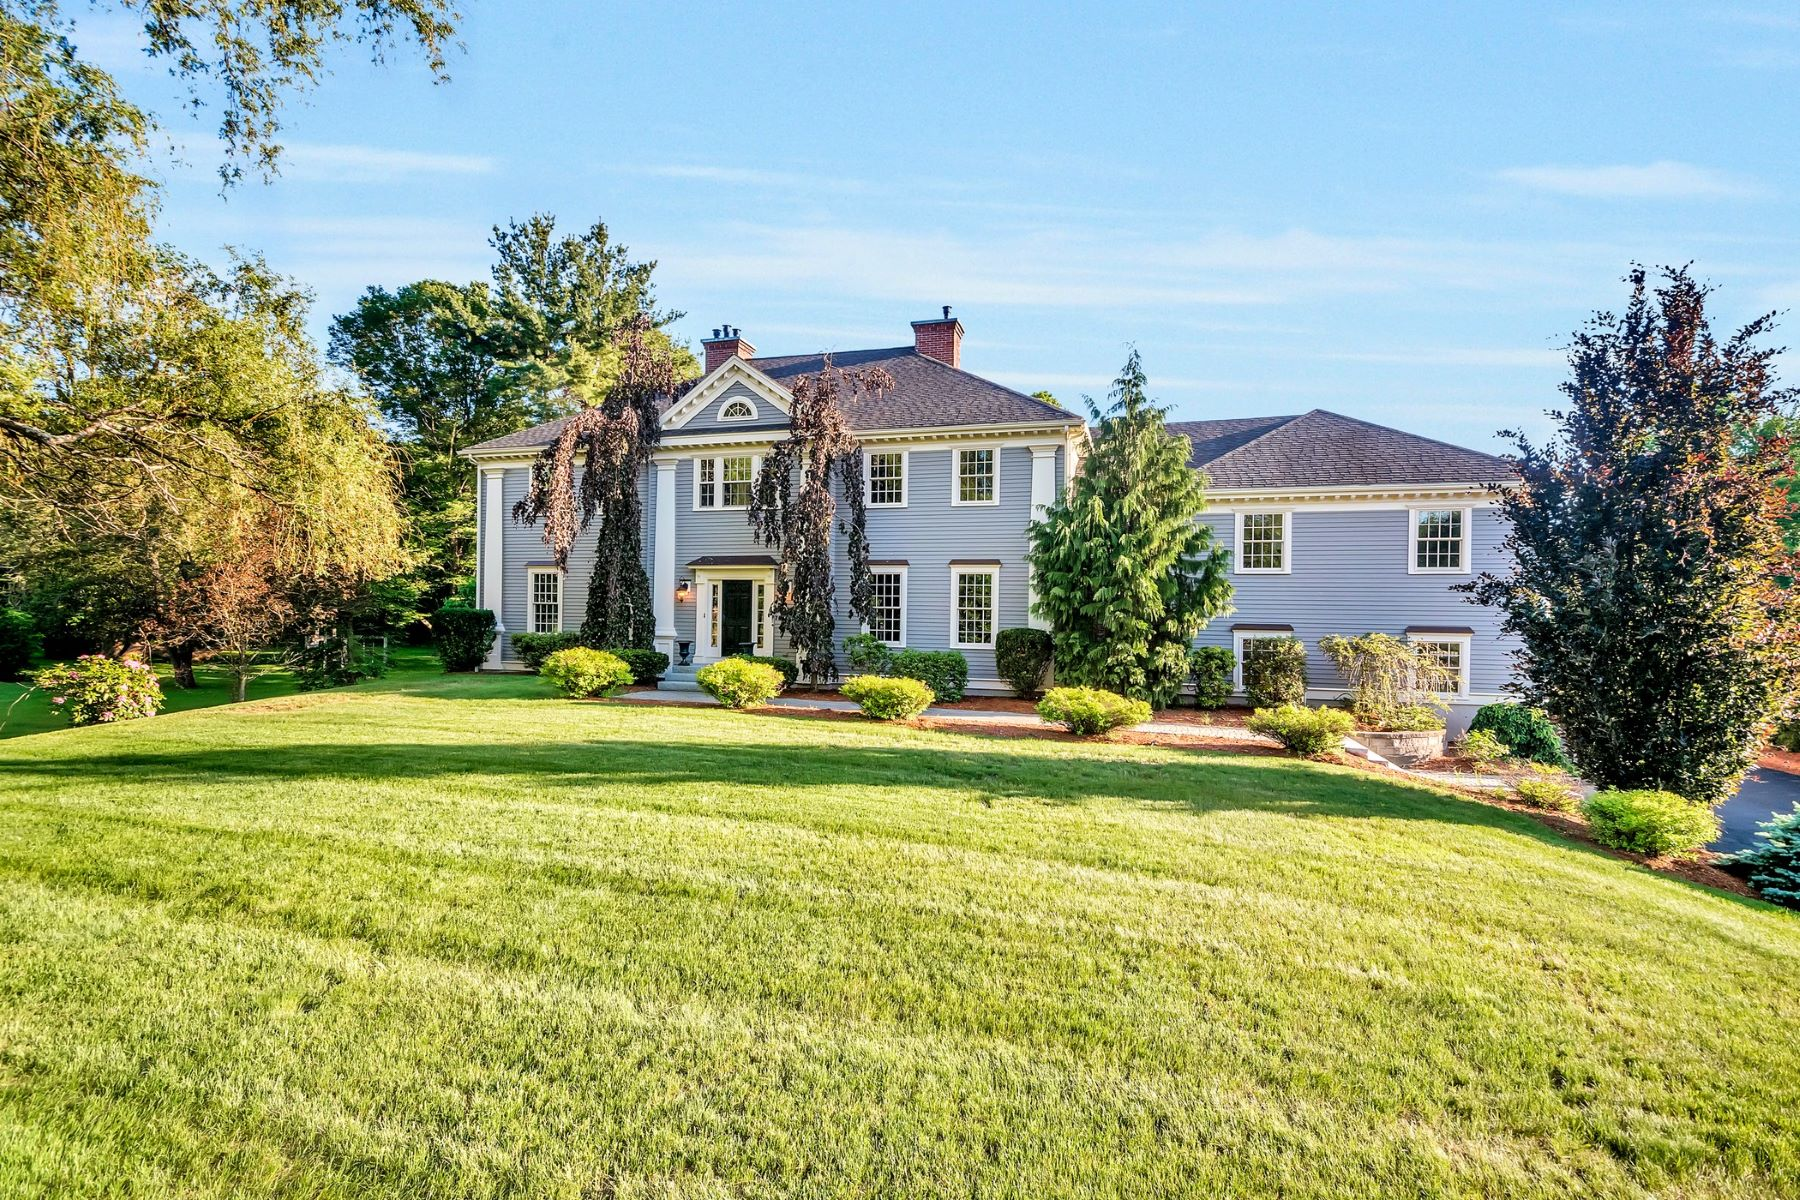 Single Family Home for Sale at Short Walk To Concord Center on Sidewalk 142 Cambridge Turnpike Concord, Massachusetts, 01742 United States